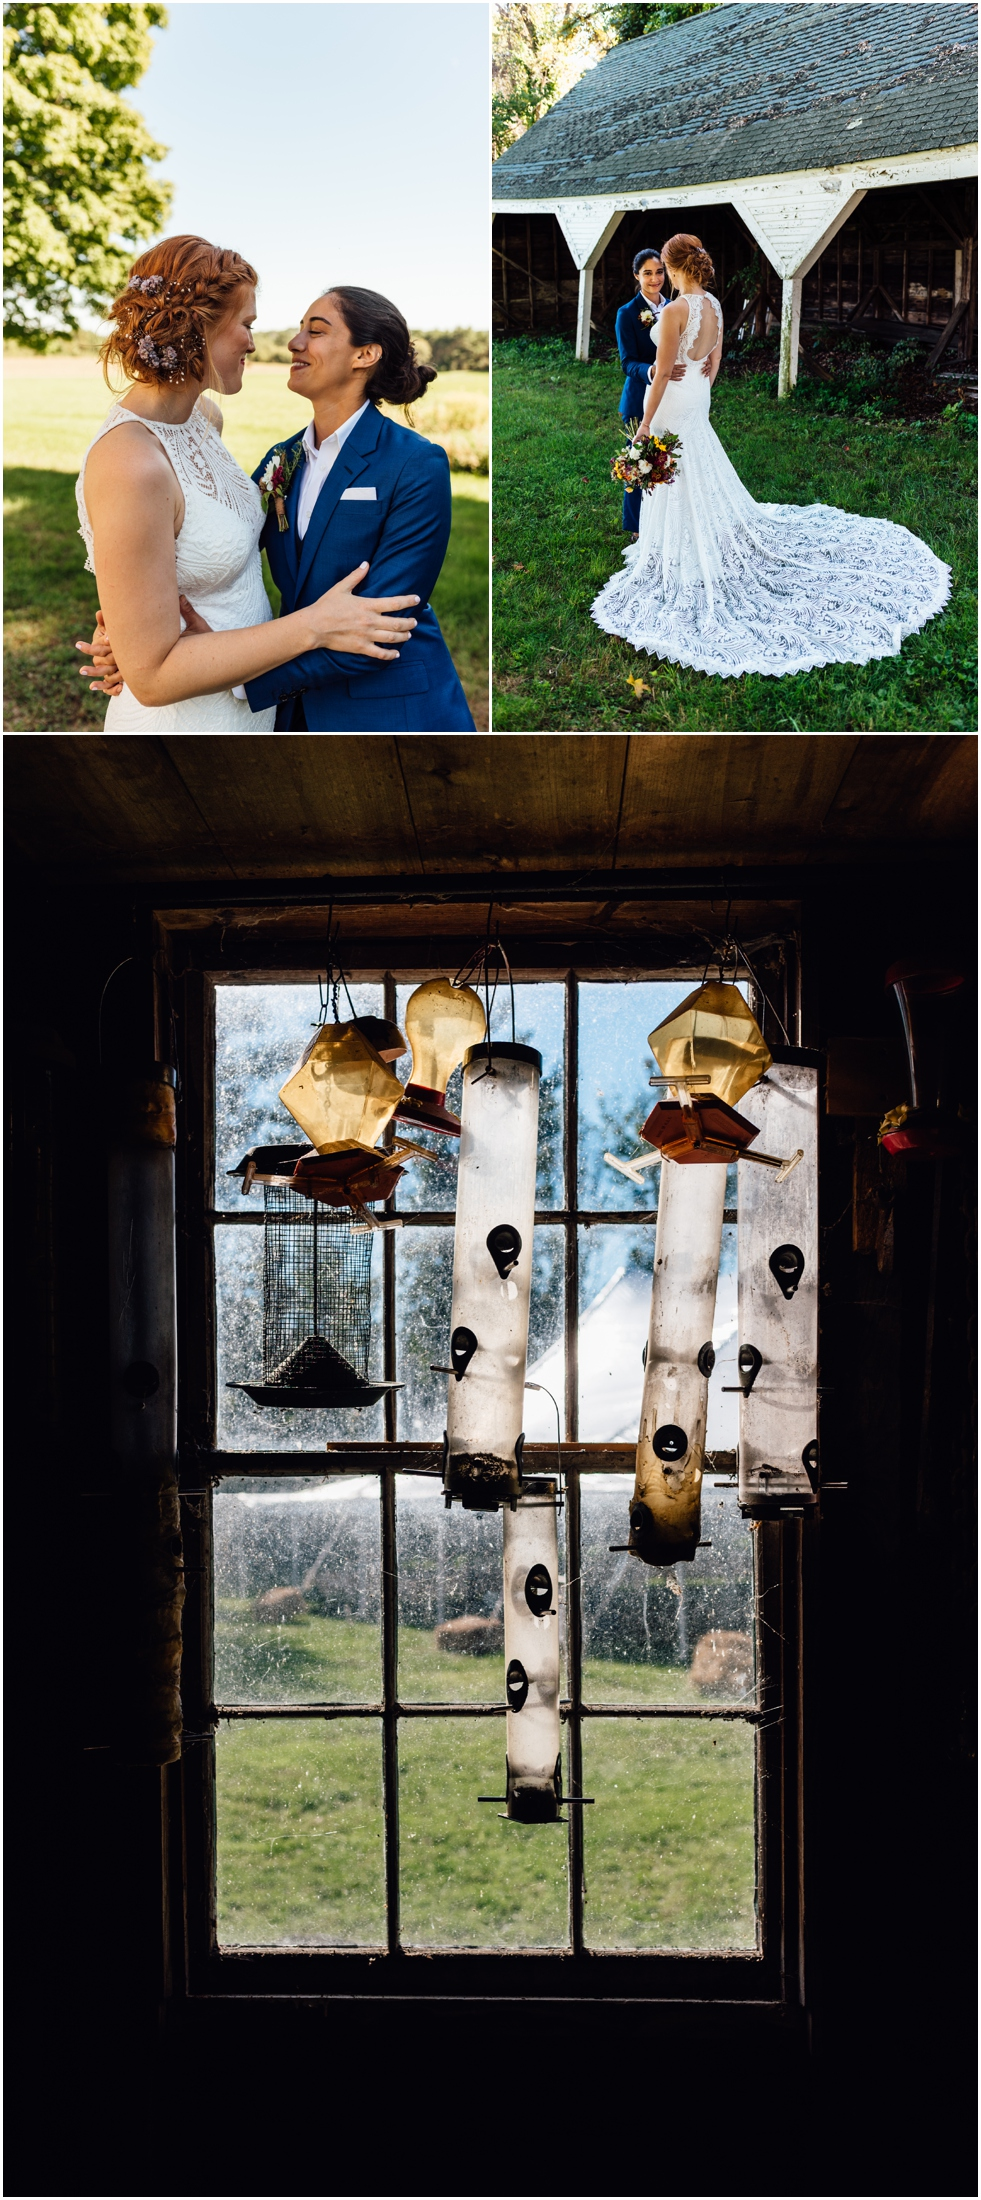 Kate_and_Michele_New_Hampshire_wedding_the_photo_farm_0602.jpg